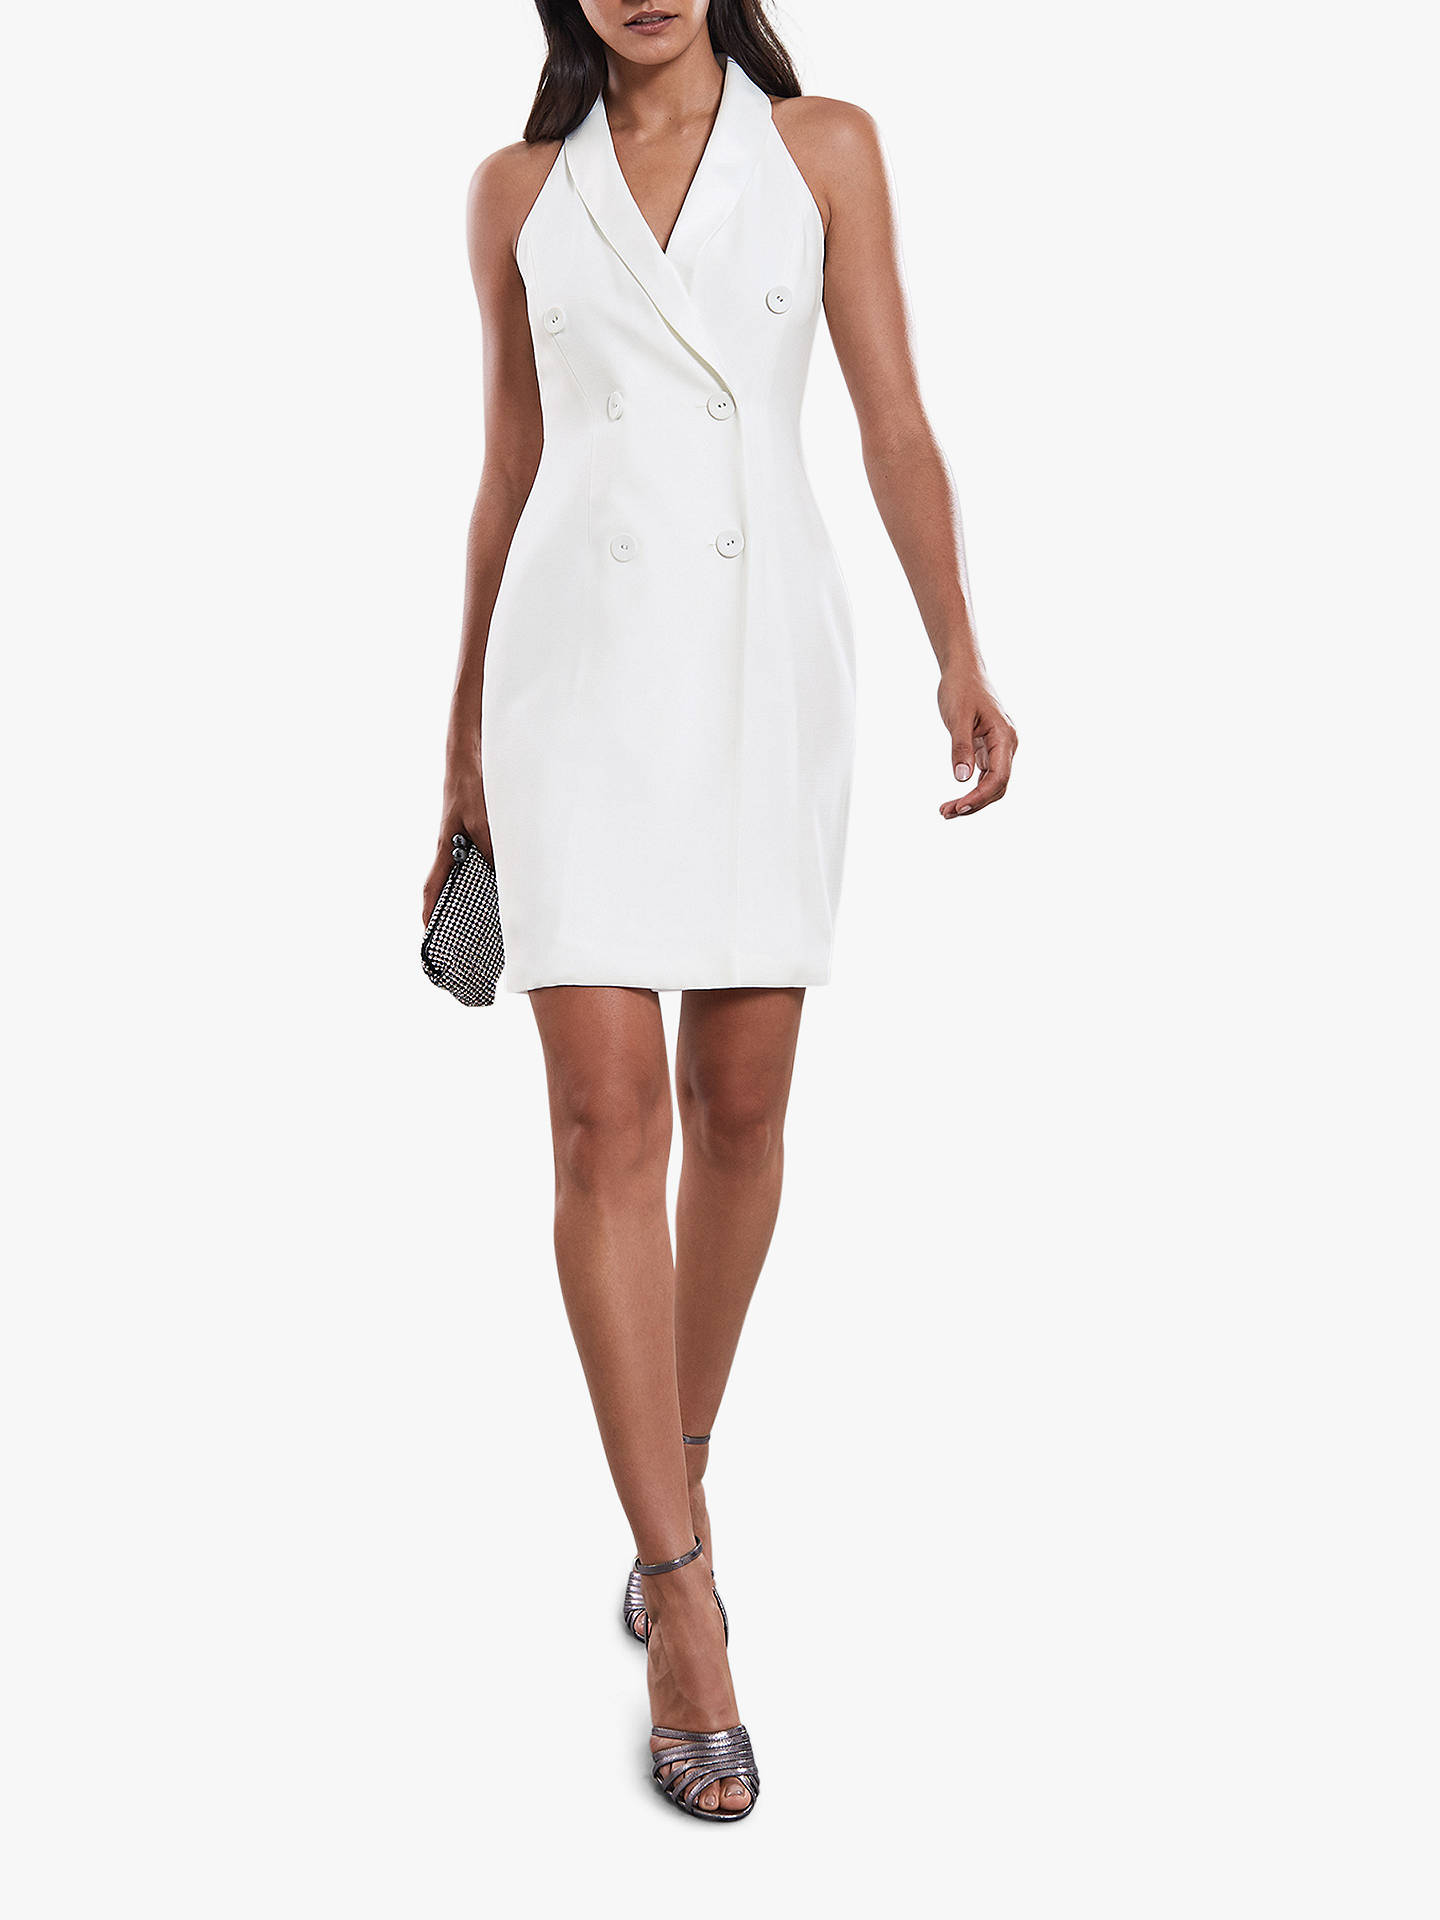 BuyReiss Sinead Sleeveless Tuxedo Dress, Off White, 6 Online at johnlewis.com